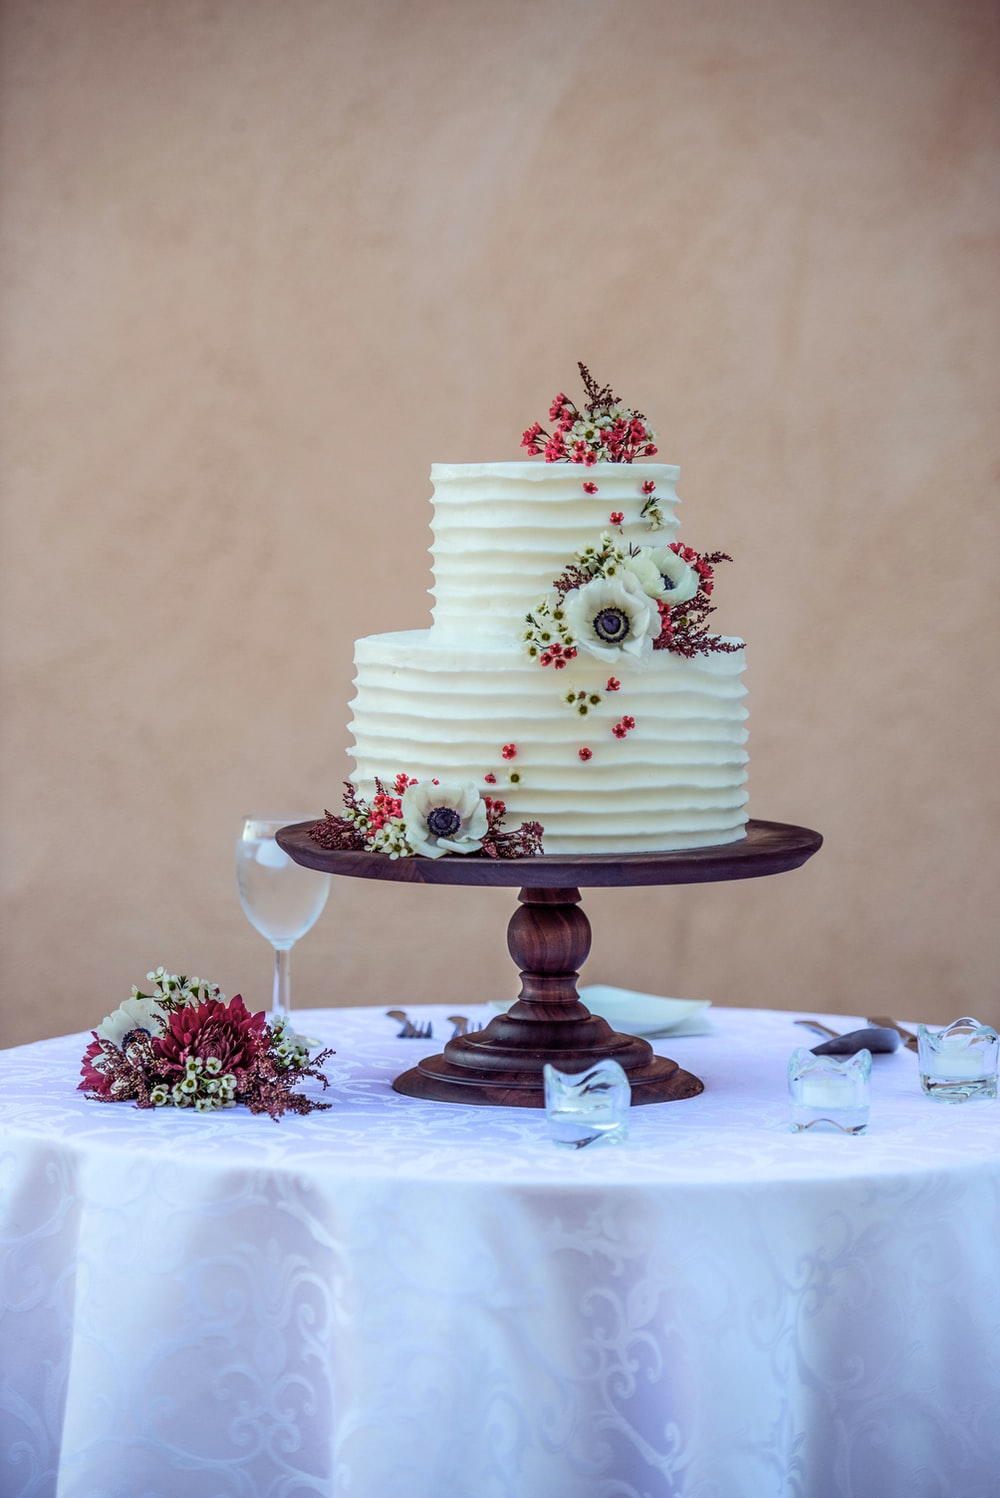 white and pink floral cake on white table